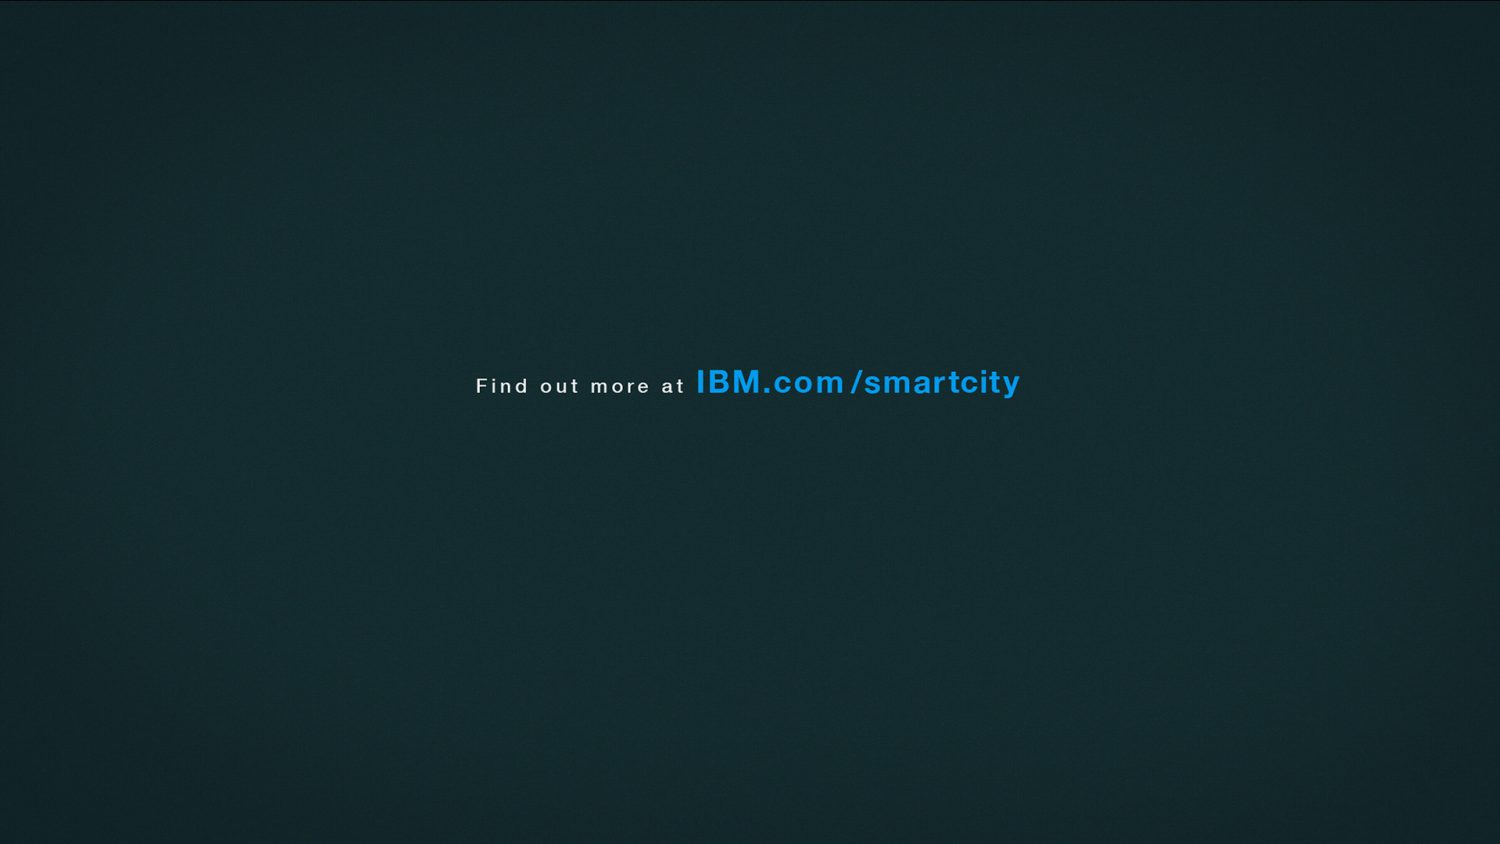 Le texte : « find out more at ibm.com/smartcity » apparaît